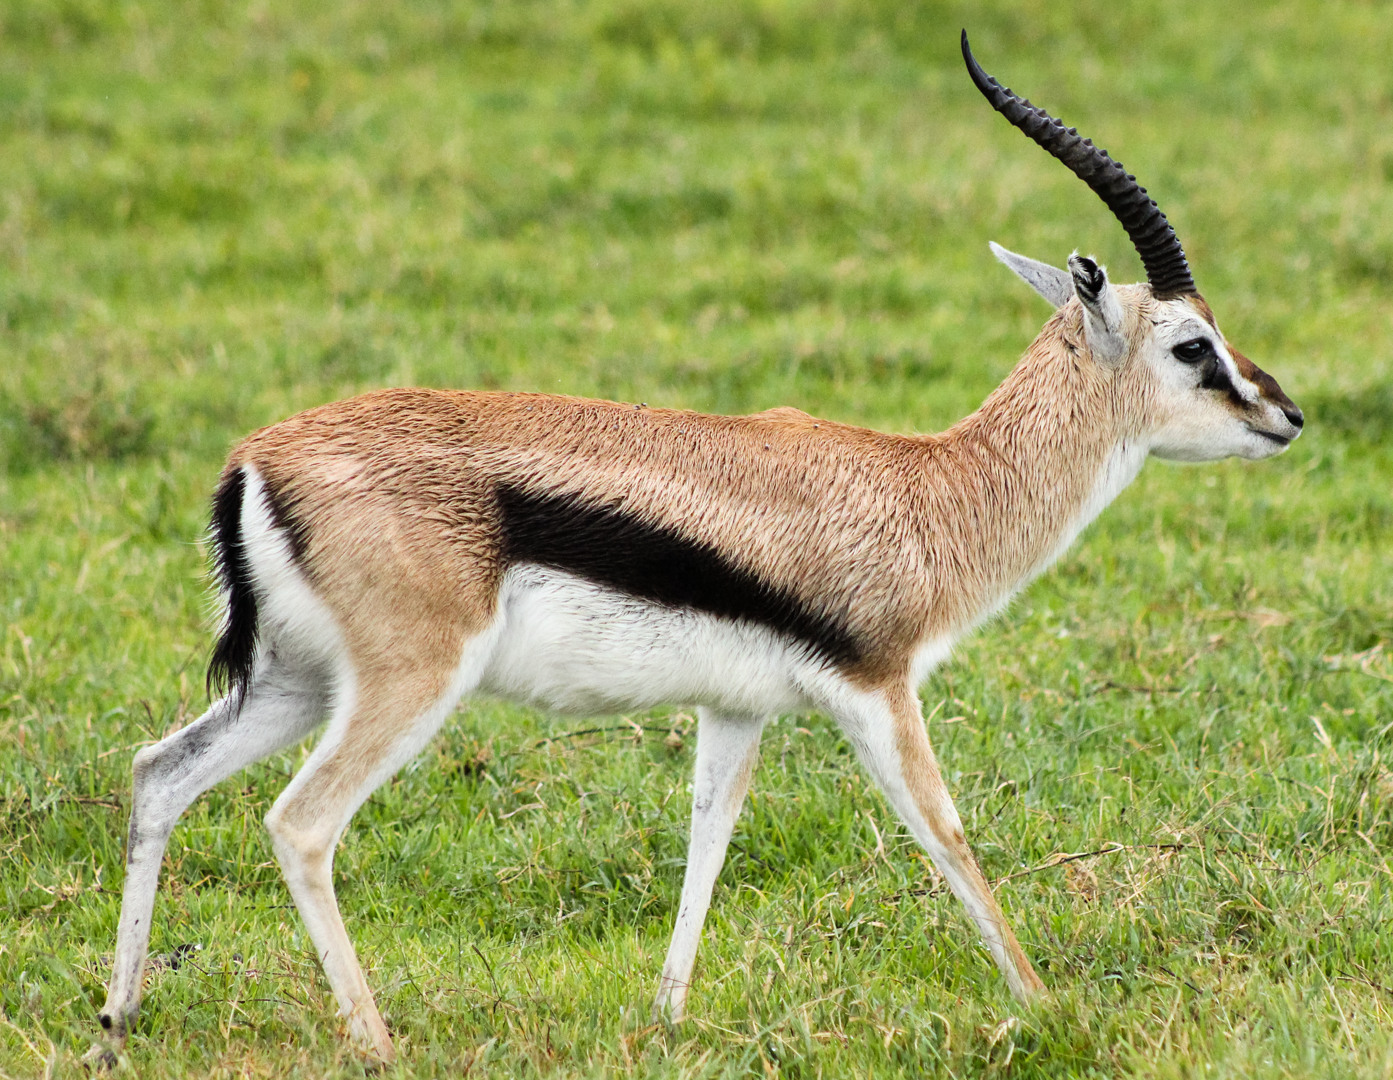 Газель Томсона Thomson's gazelle (Gazella thomsoni), Нгоронгоро